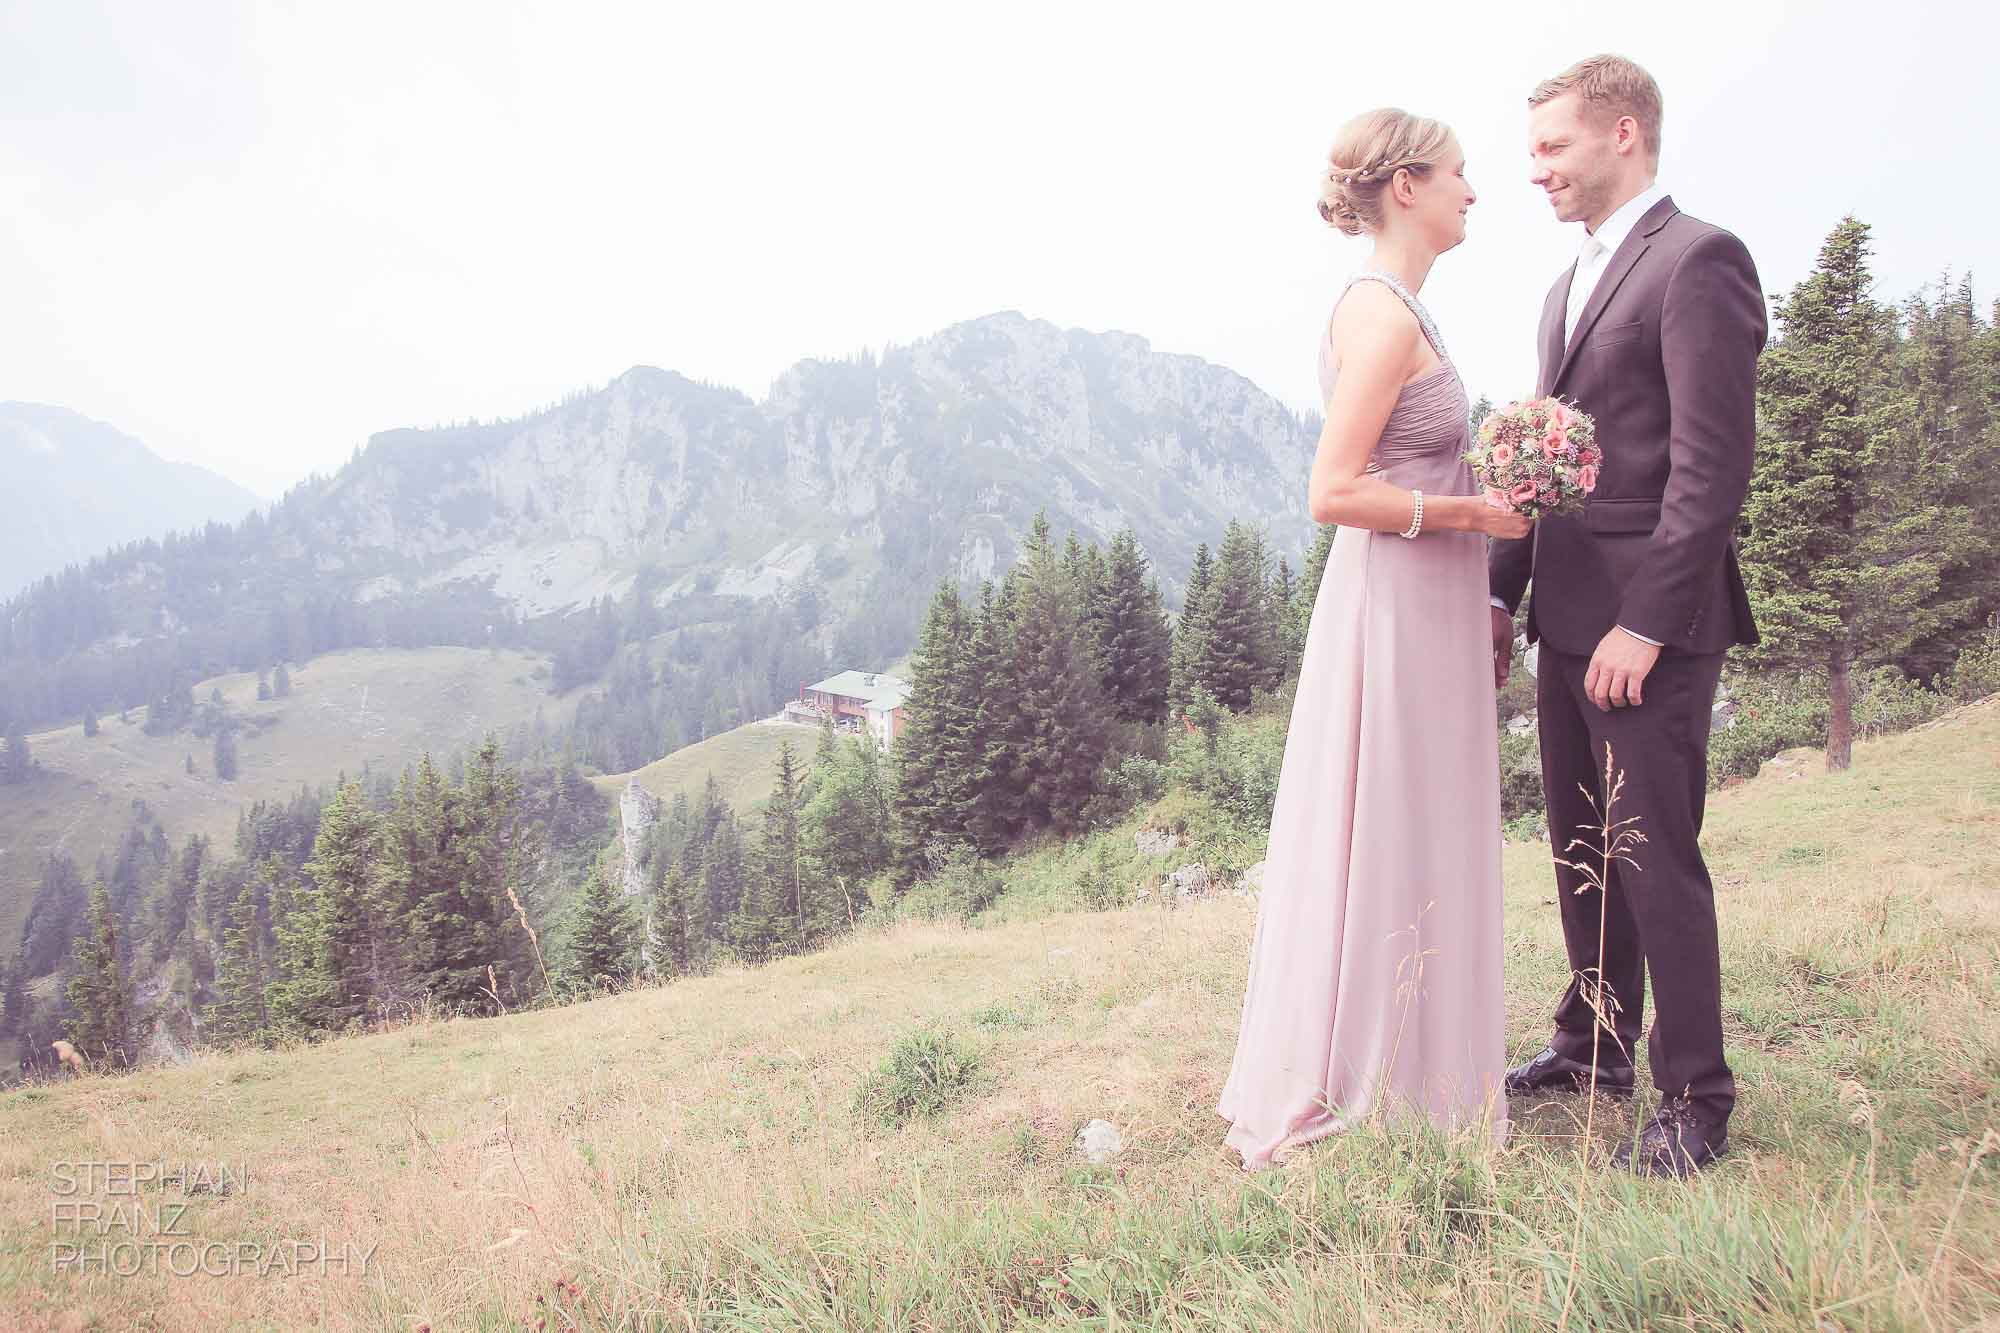 Hochzeit Shooting Kampenwand 2013 - Stephan Franz Photography